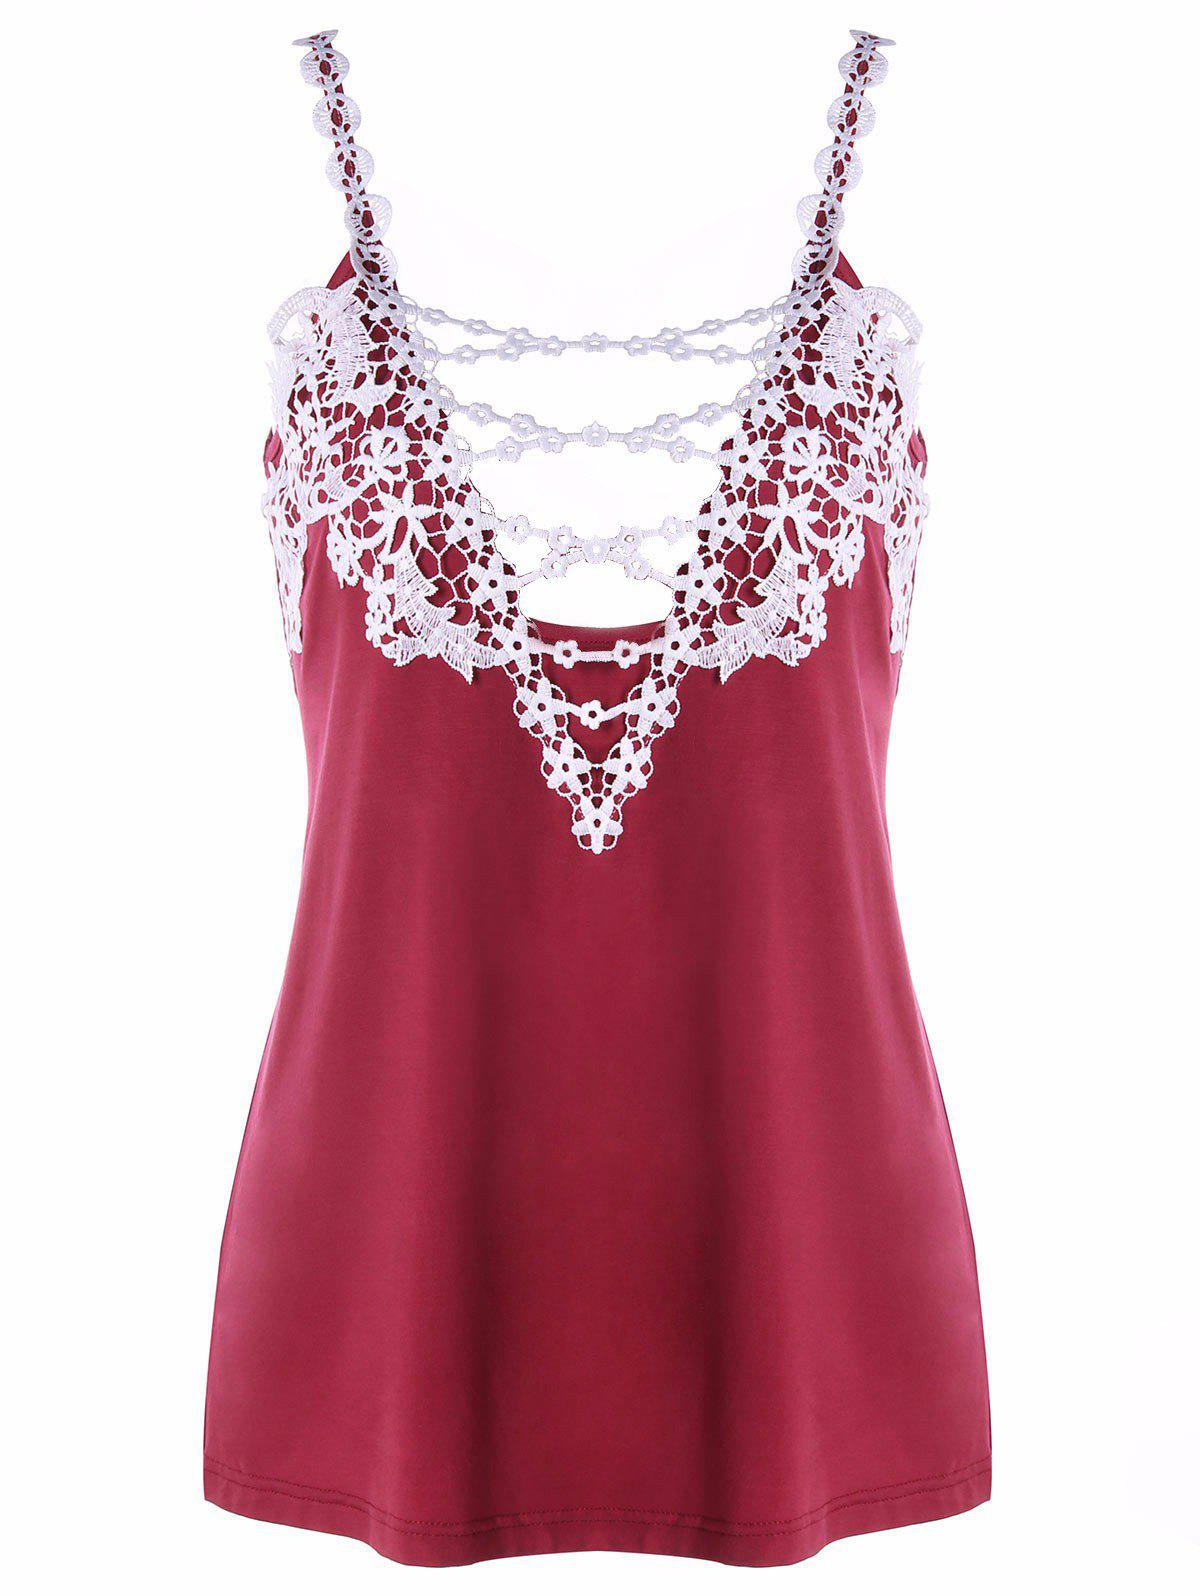 Cami Strap Applique Tank Top - RED M